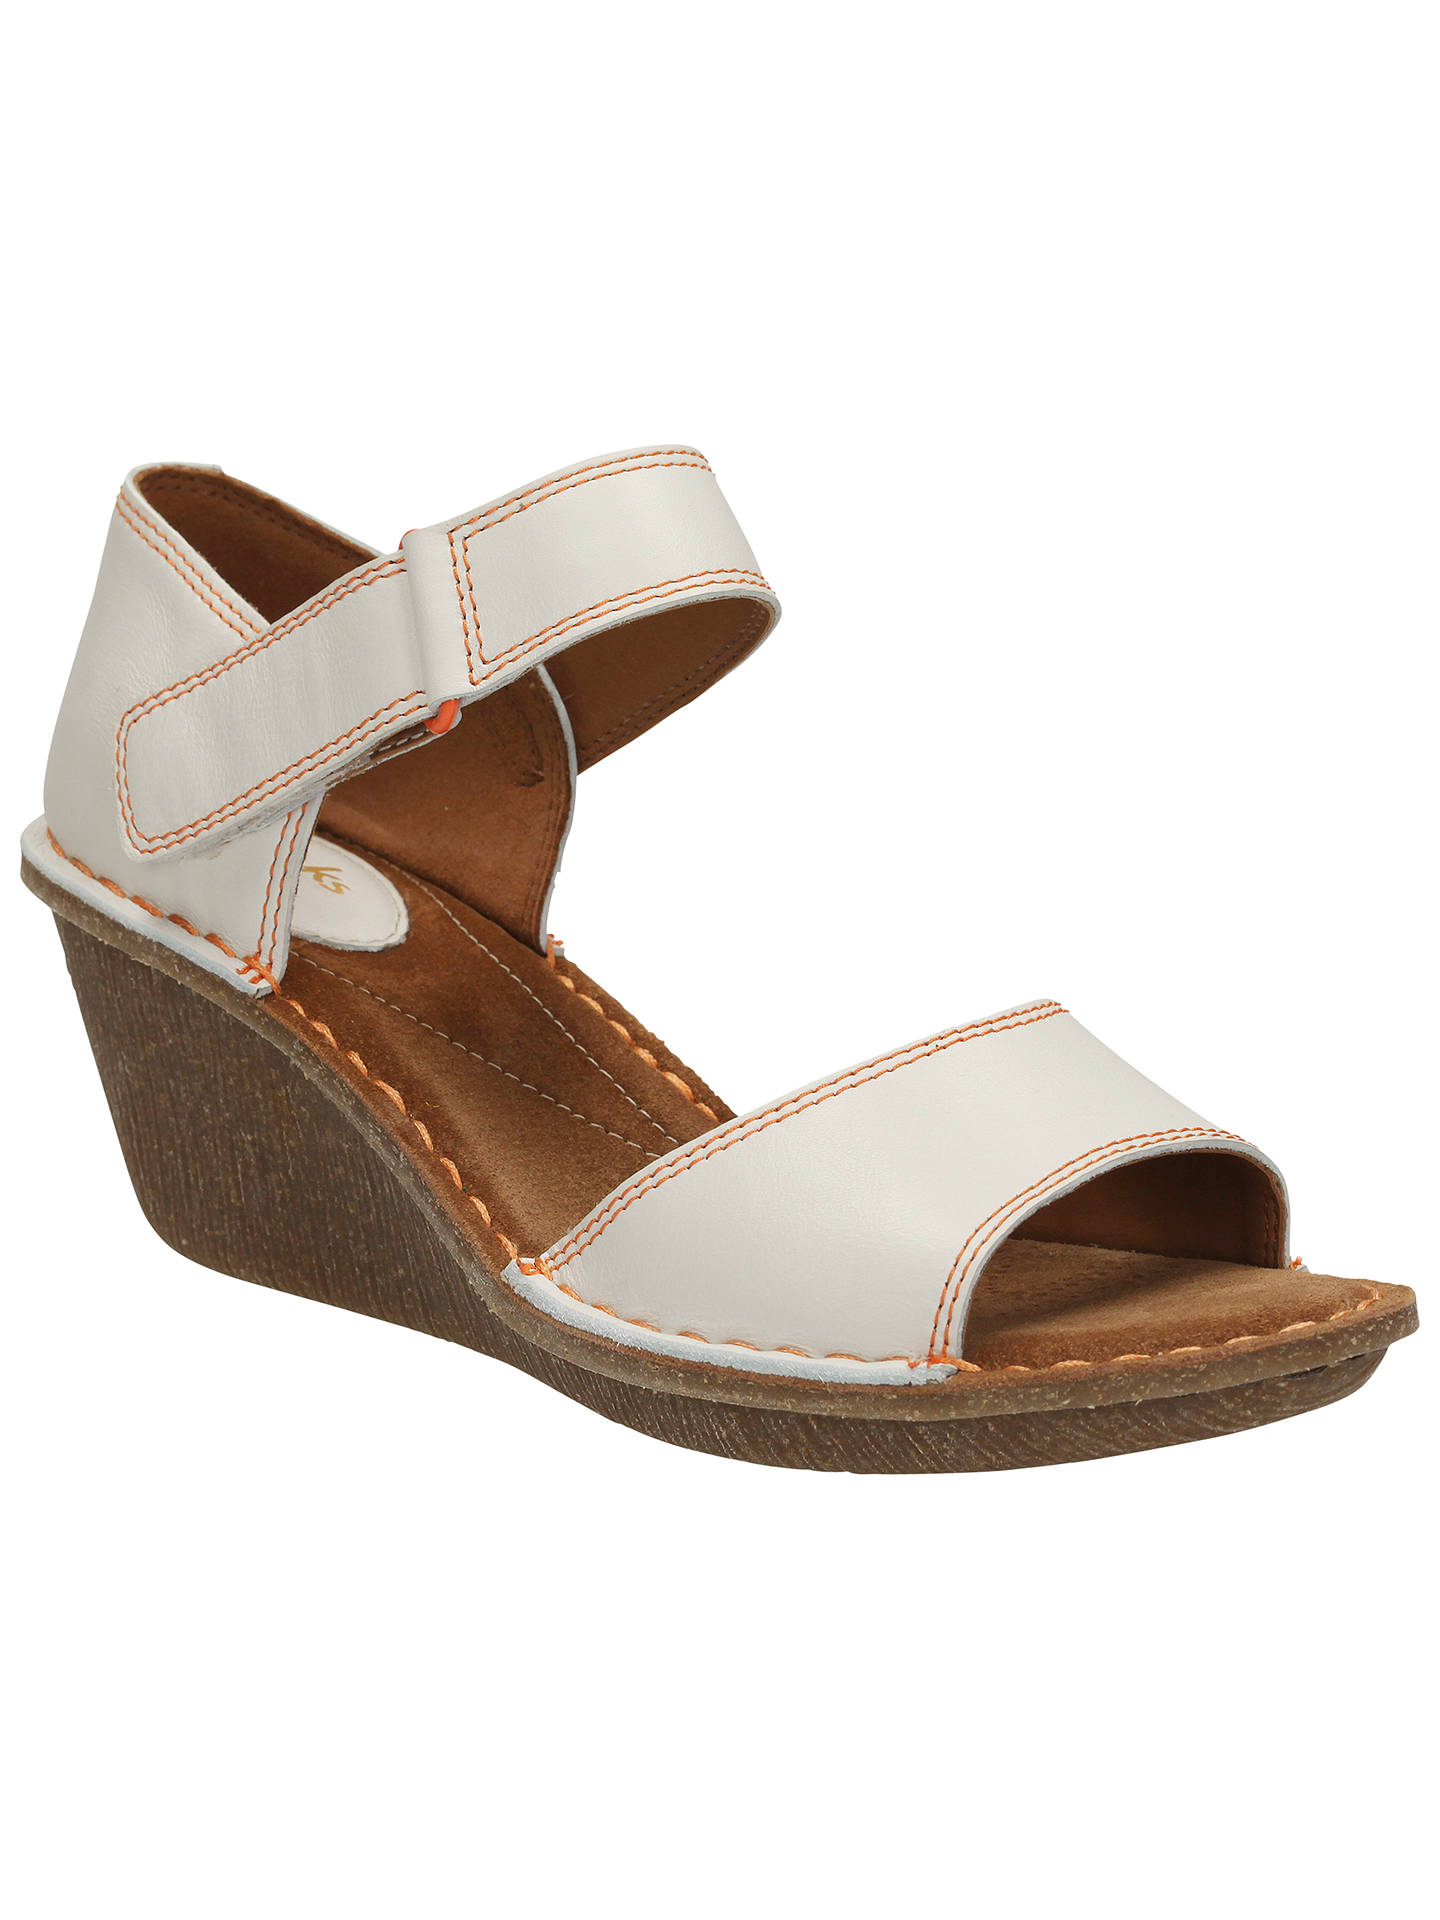 Clarks Orient Sea Leather Sandals, White at John Lewis